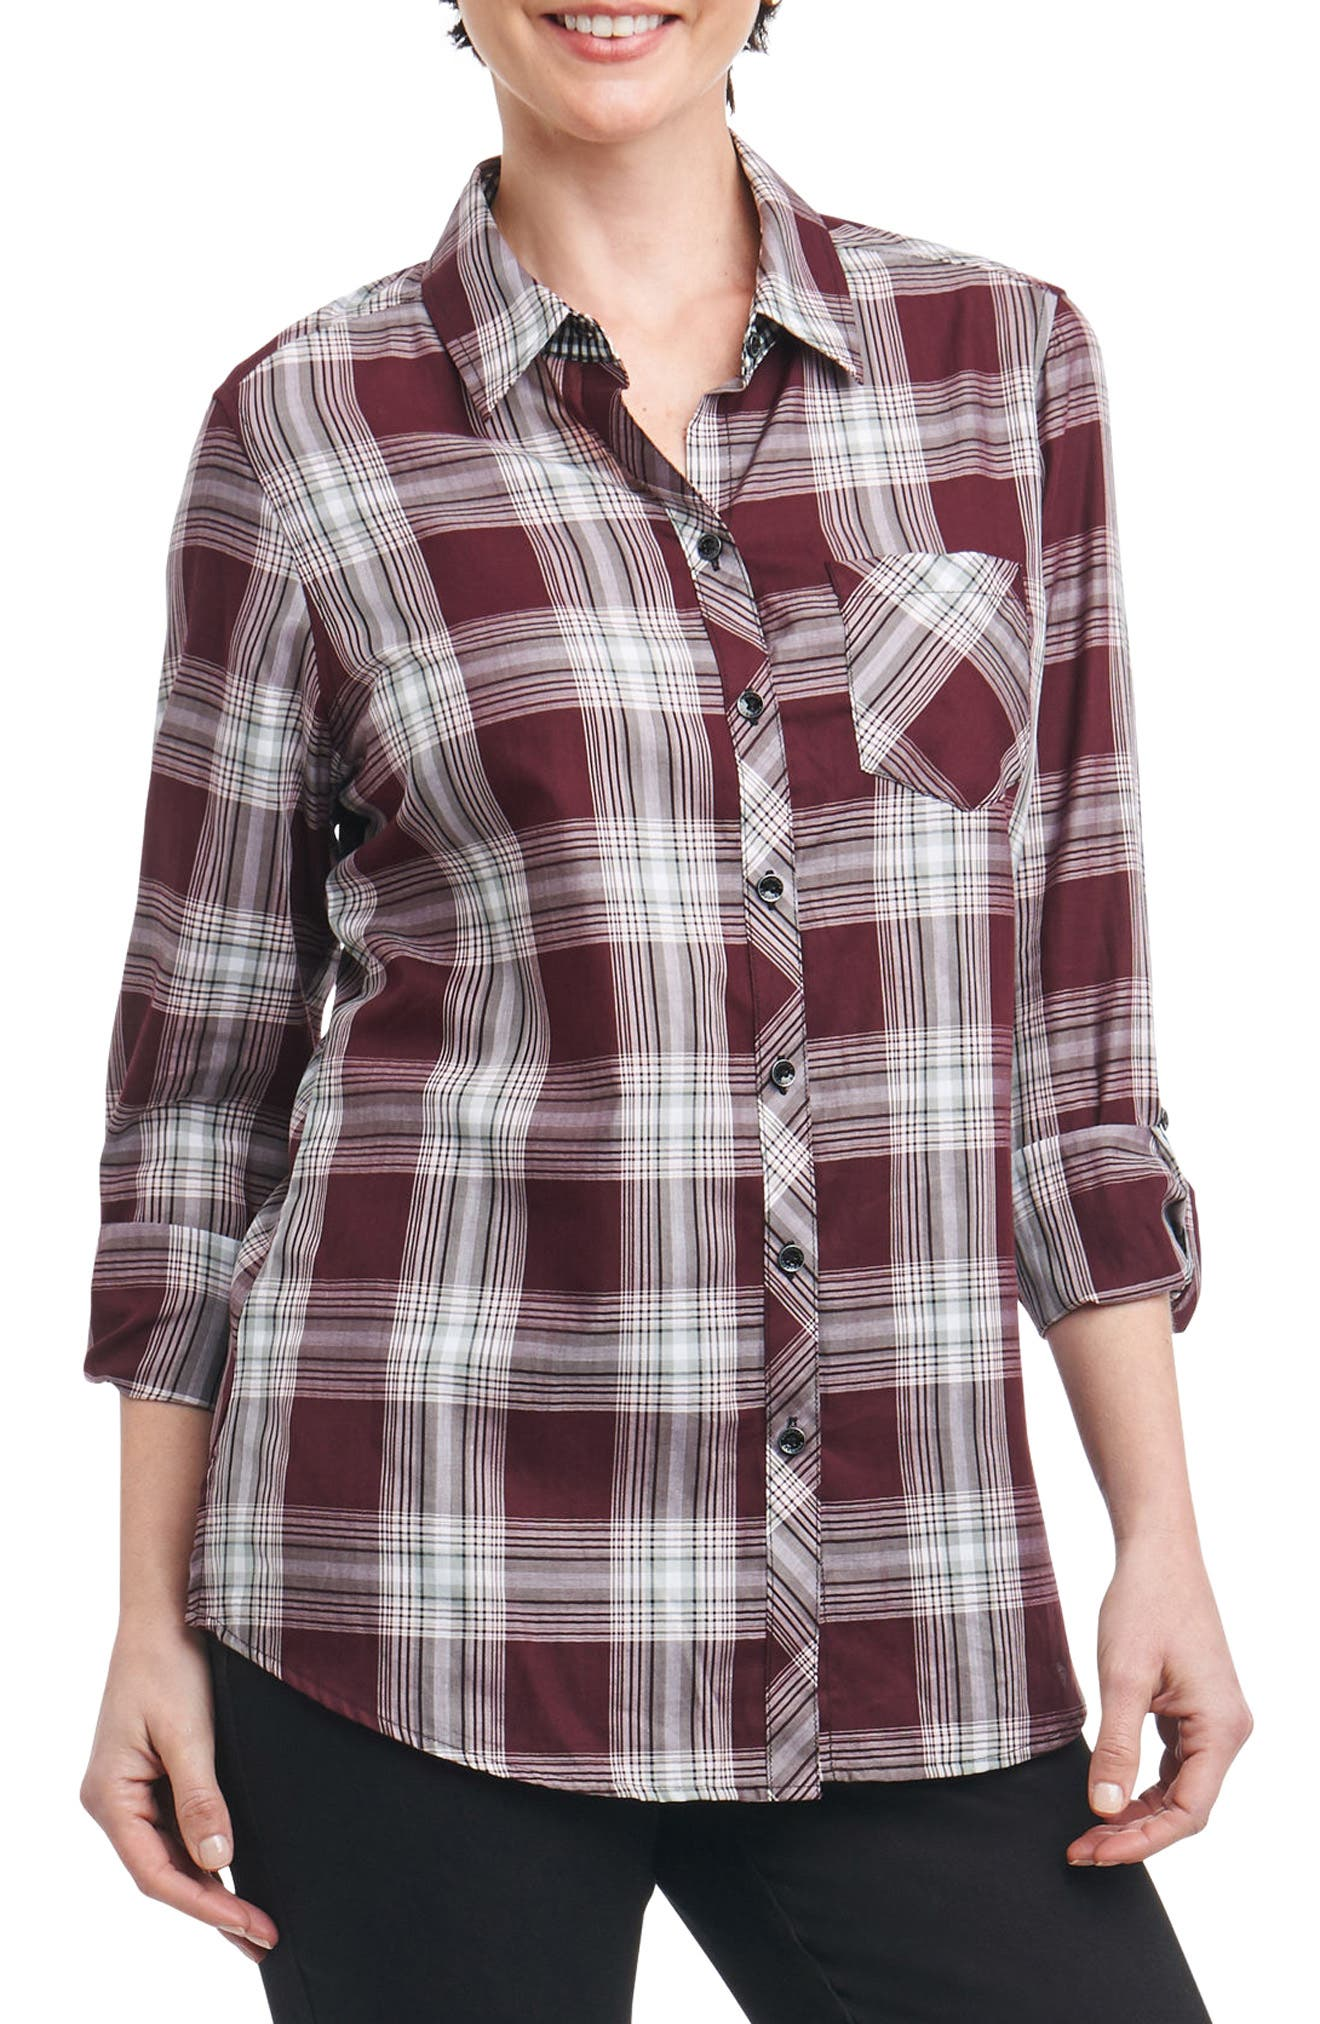 Addison Plaid Shirt,                             Main thumbnail 1, color,                             936